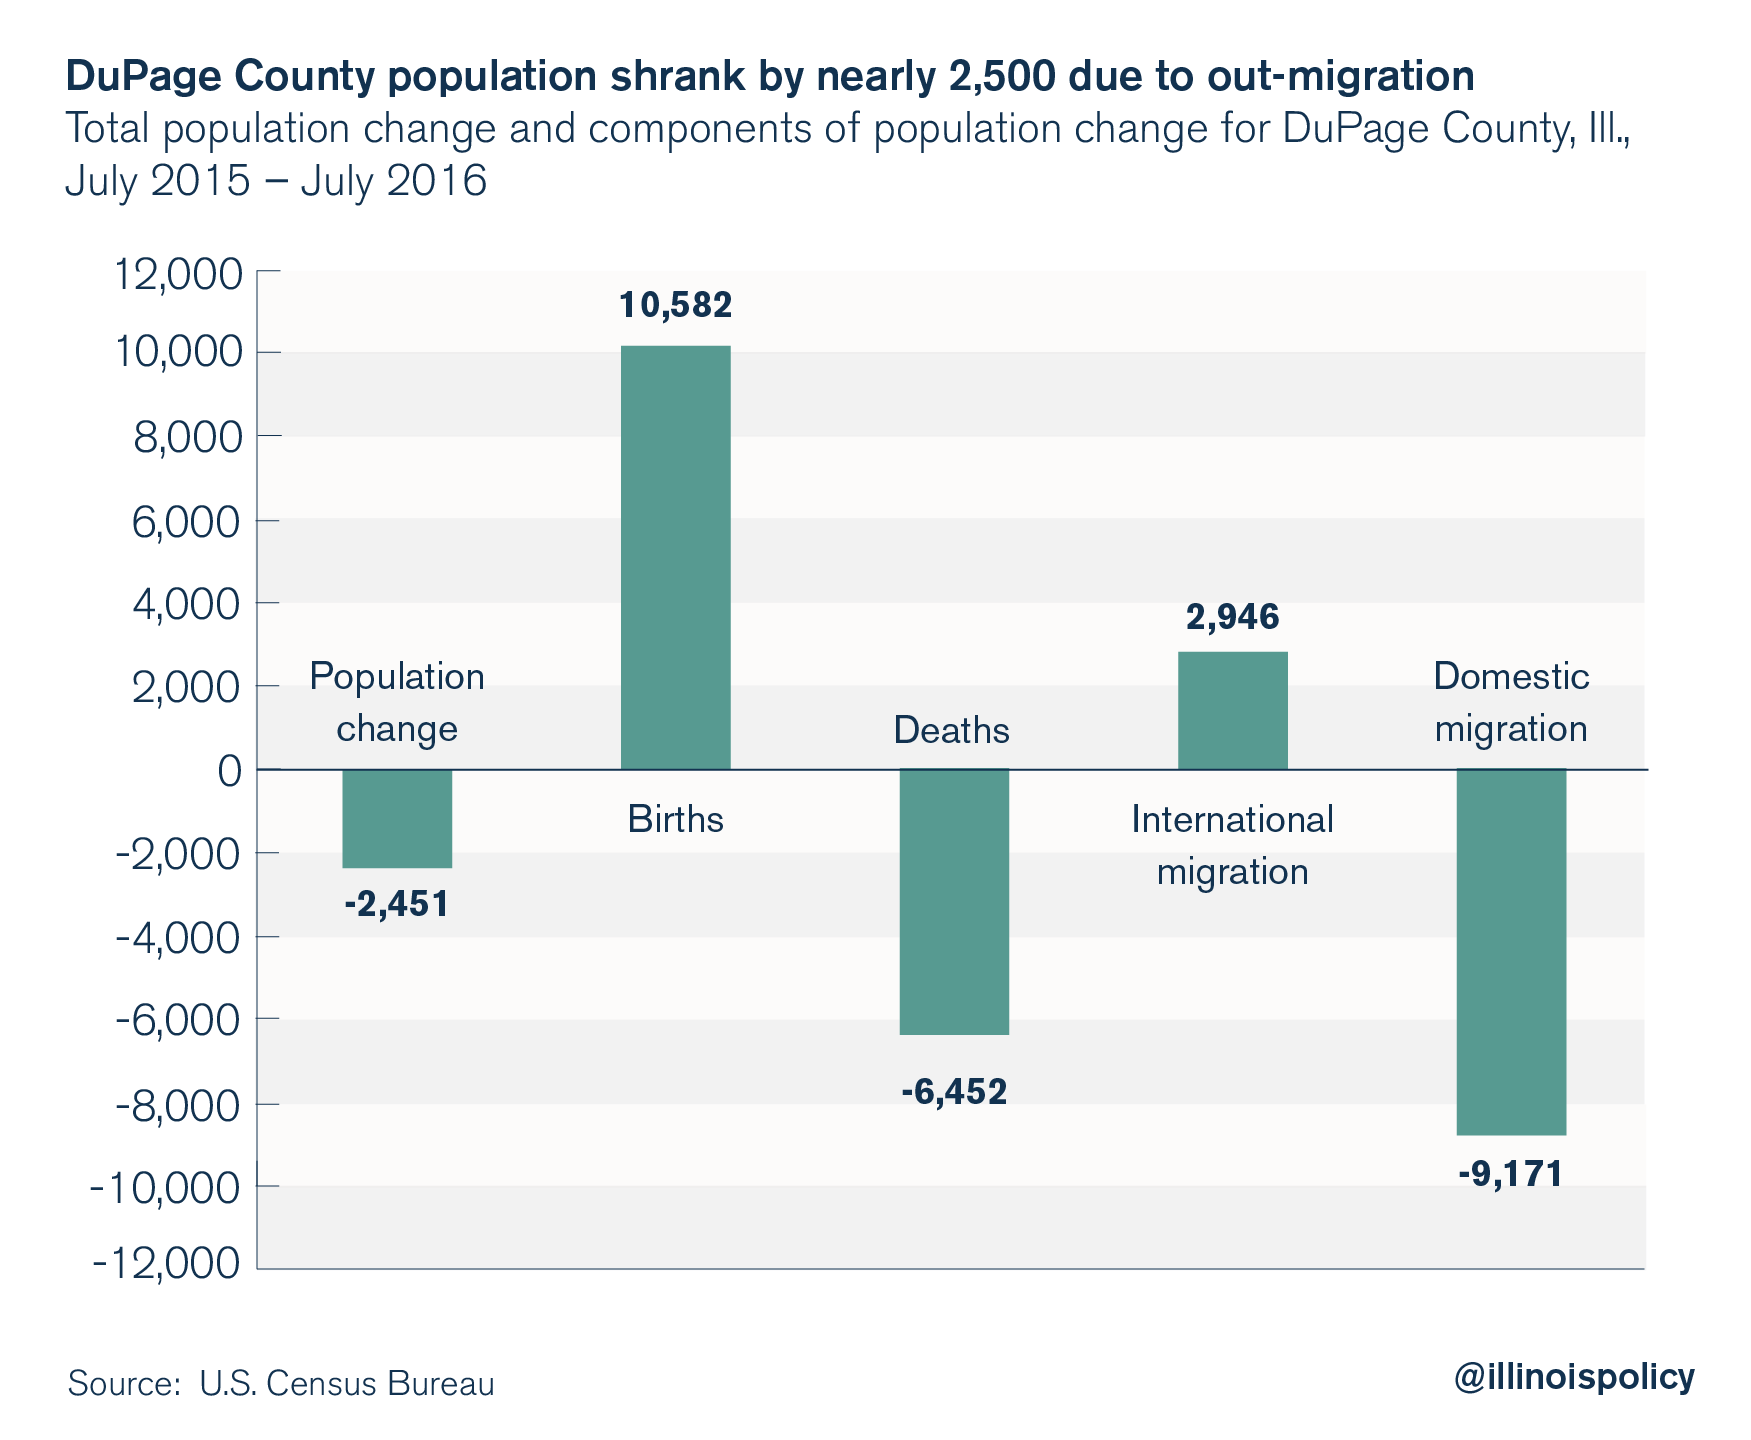 illinois outmigration: dupage county